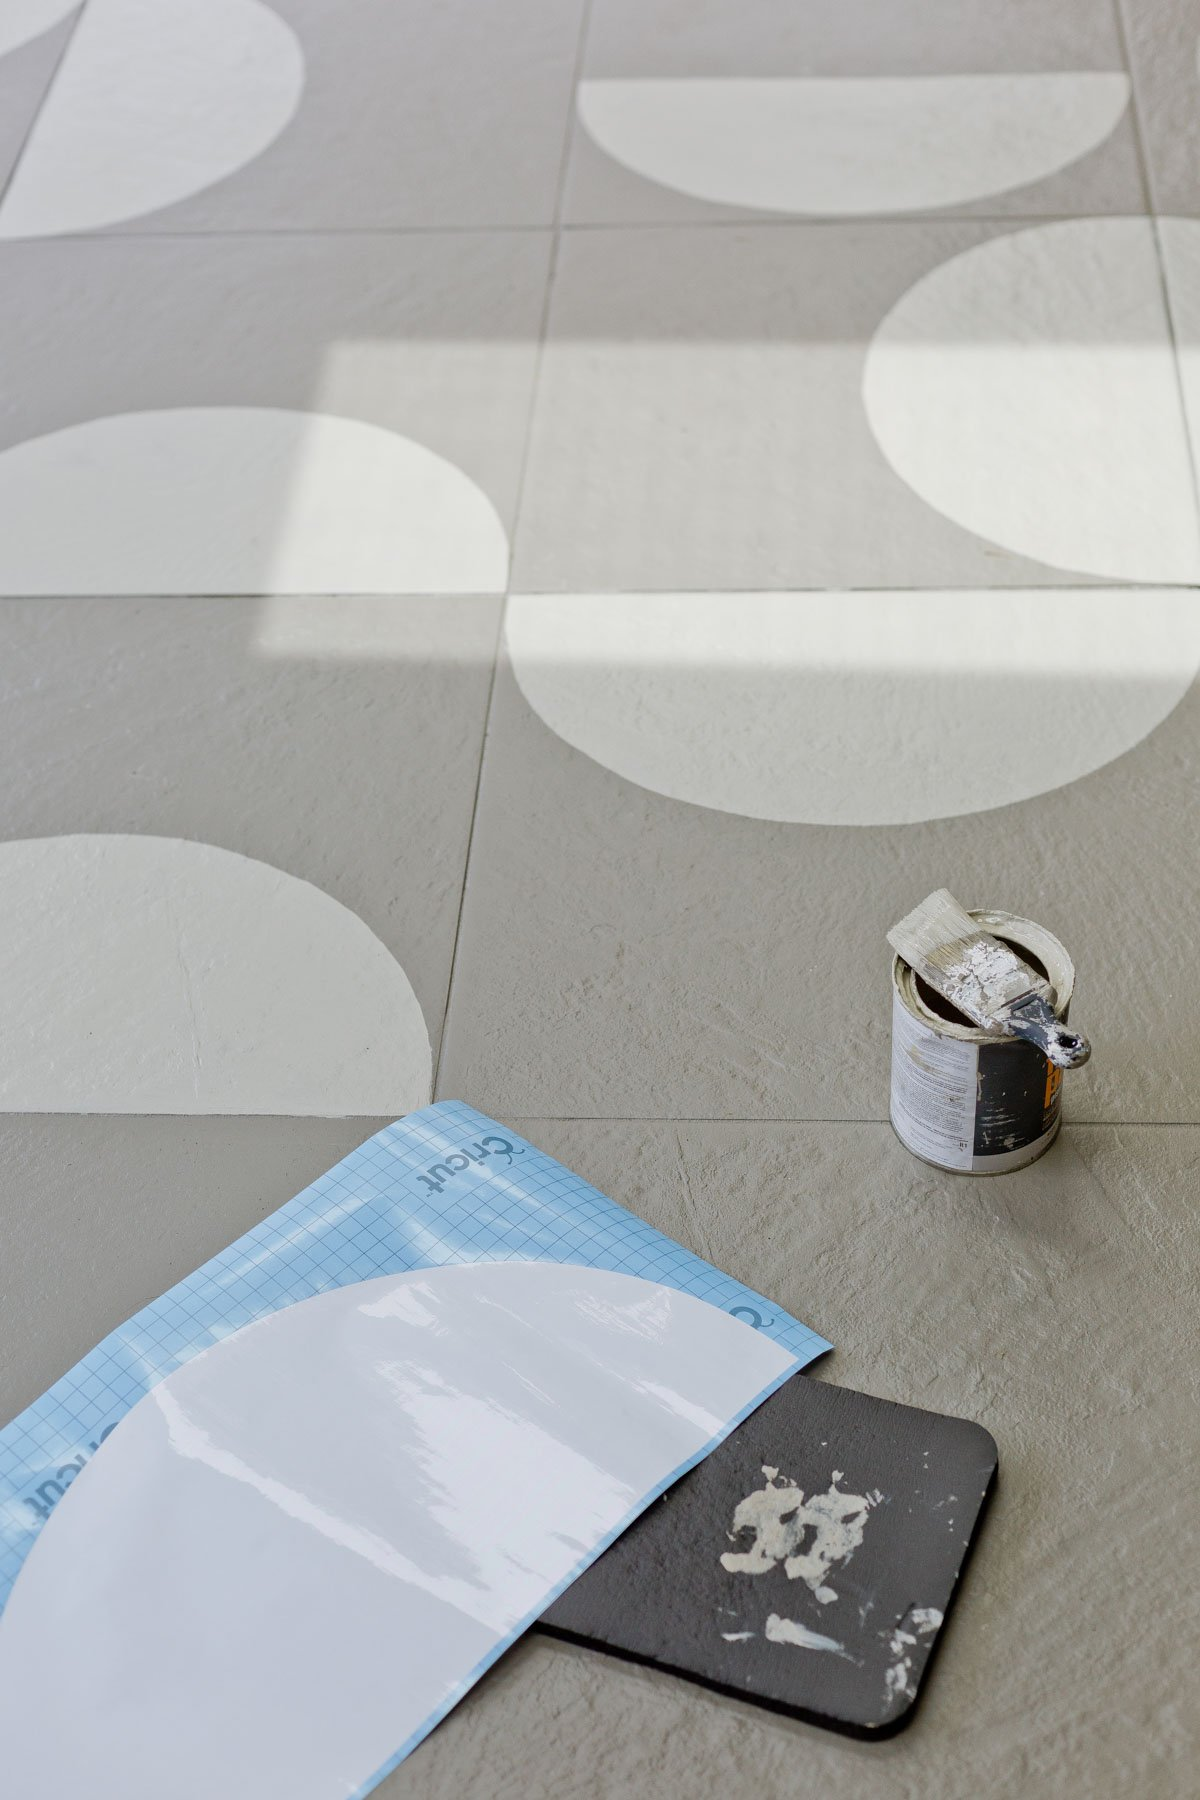 Painting floor tiles with a paint brush and custom made stencil.